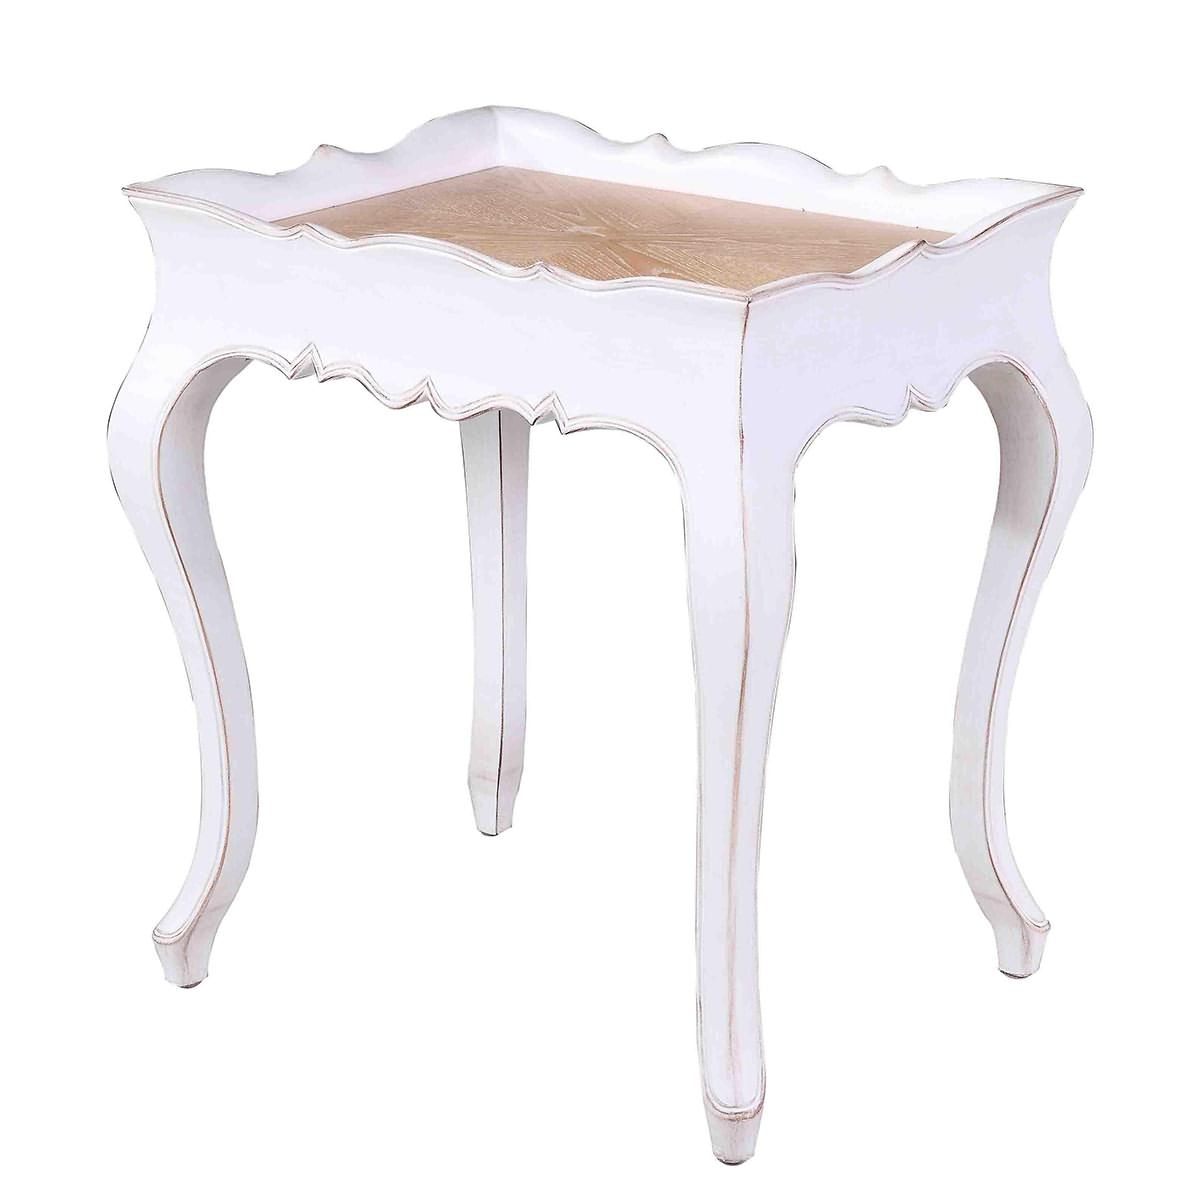 Coffee table|End table|side table|Artech